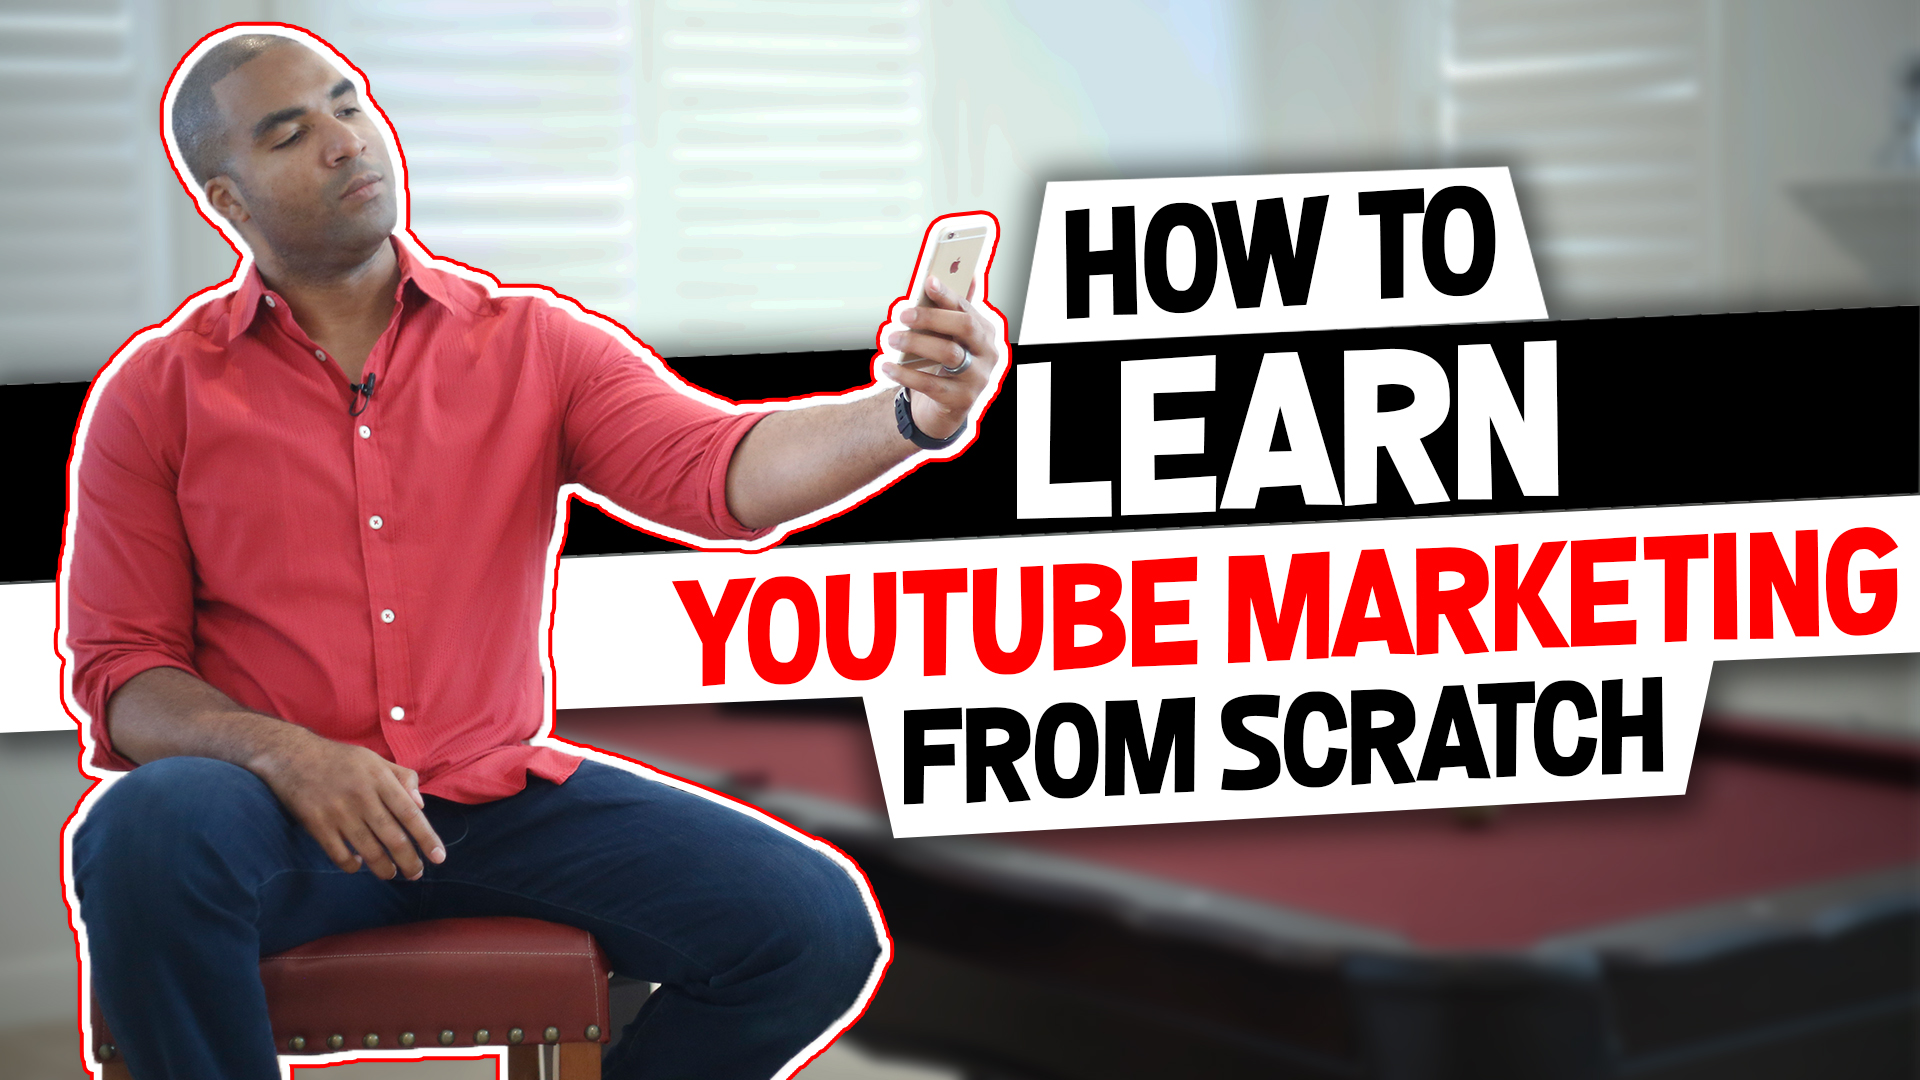 How To Learn YouTube Marketing From Scratch (4 Secrets For Beginners)